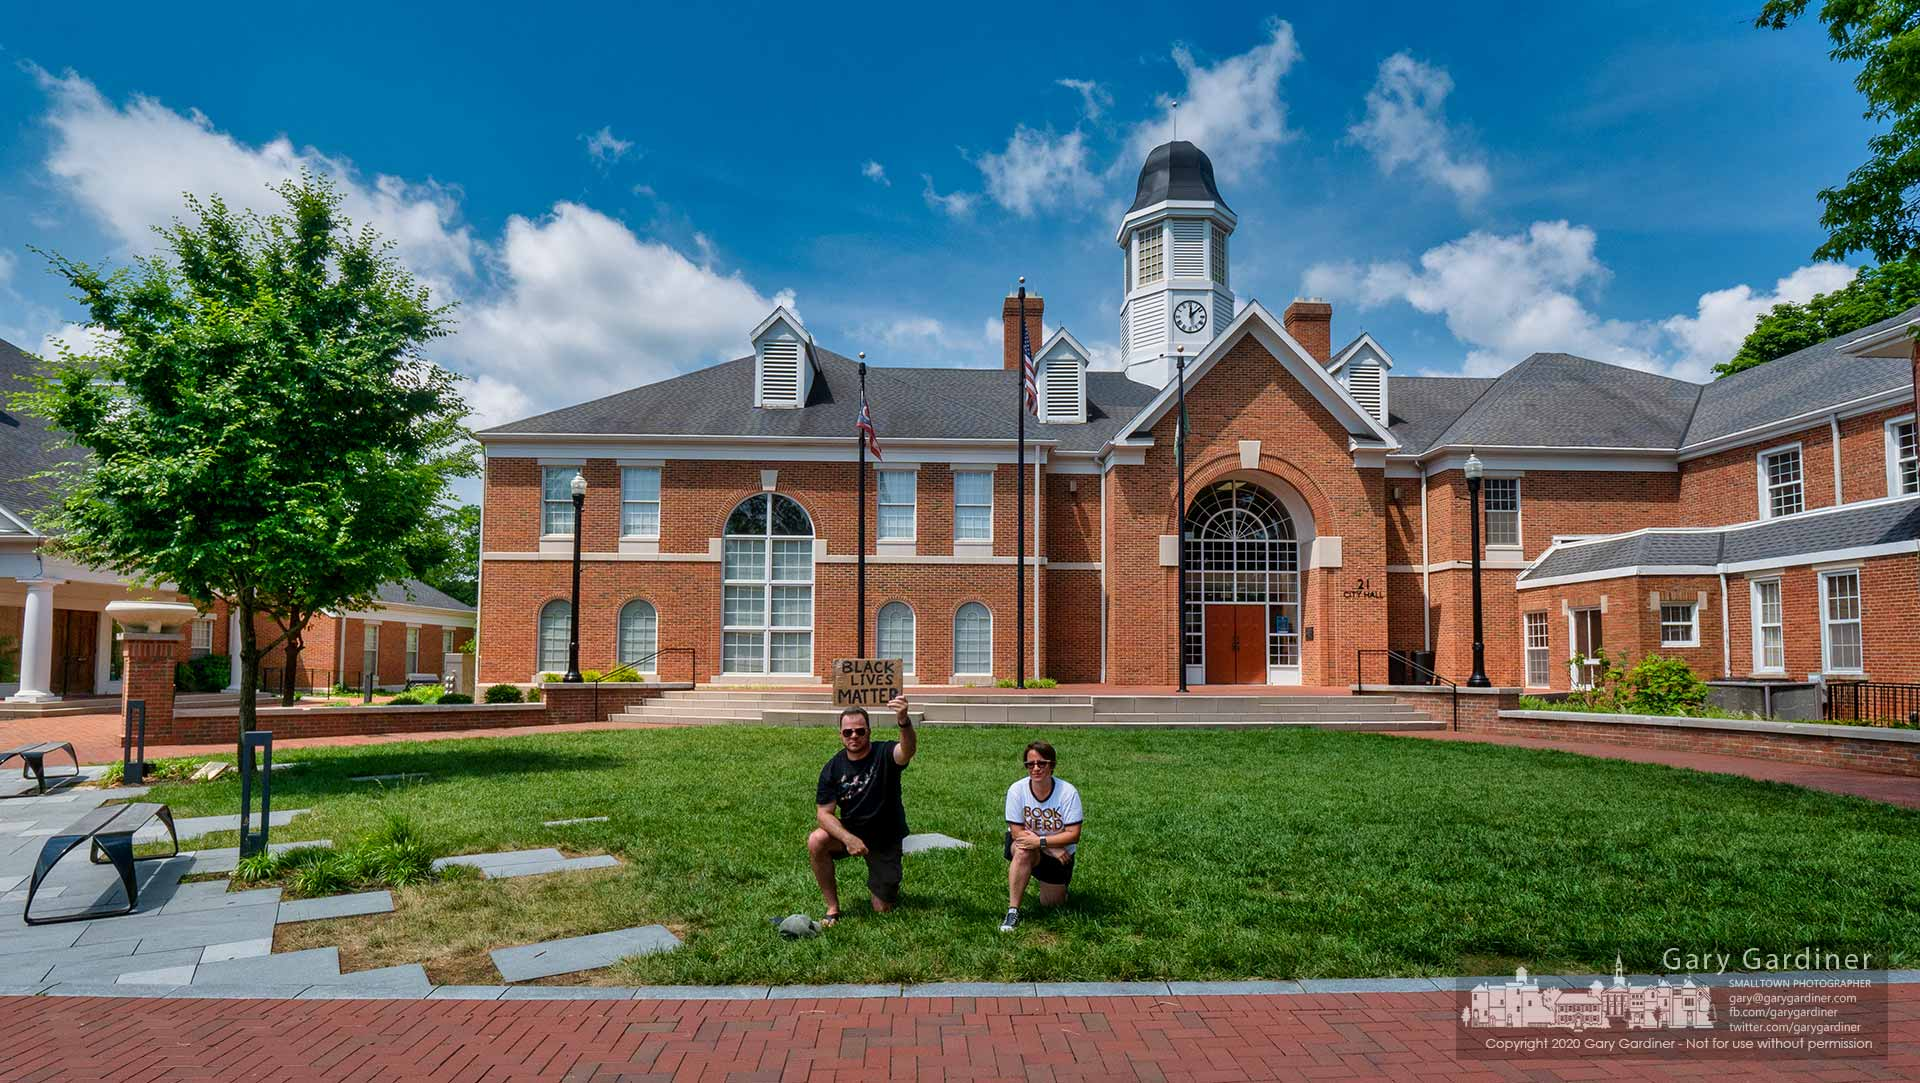 A pair of protesters supporting the BLM movement kneel on the grass in front of Westerville City Hall at noon on Friday. My Final Photo for June 5, 2020.